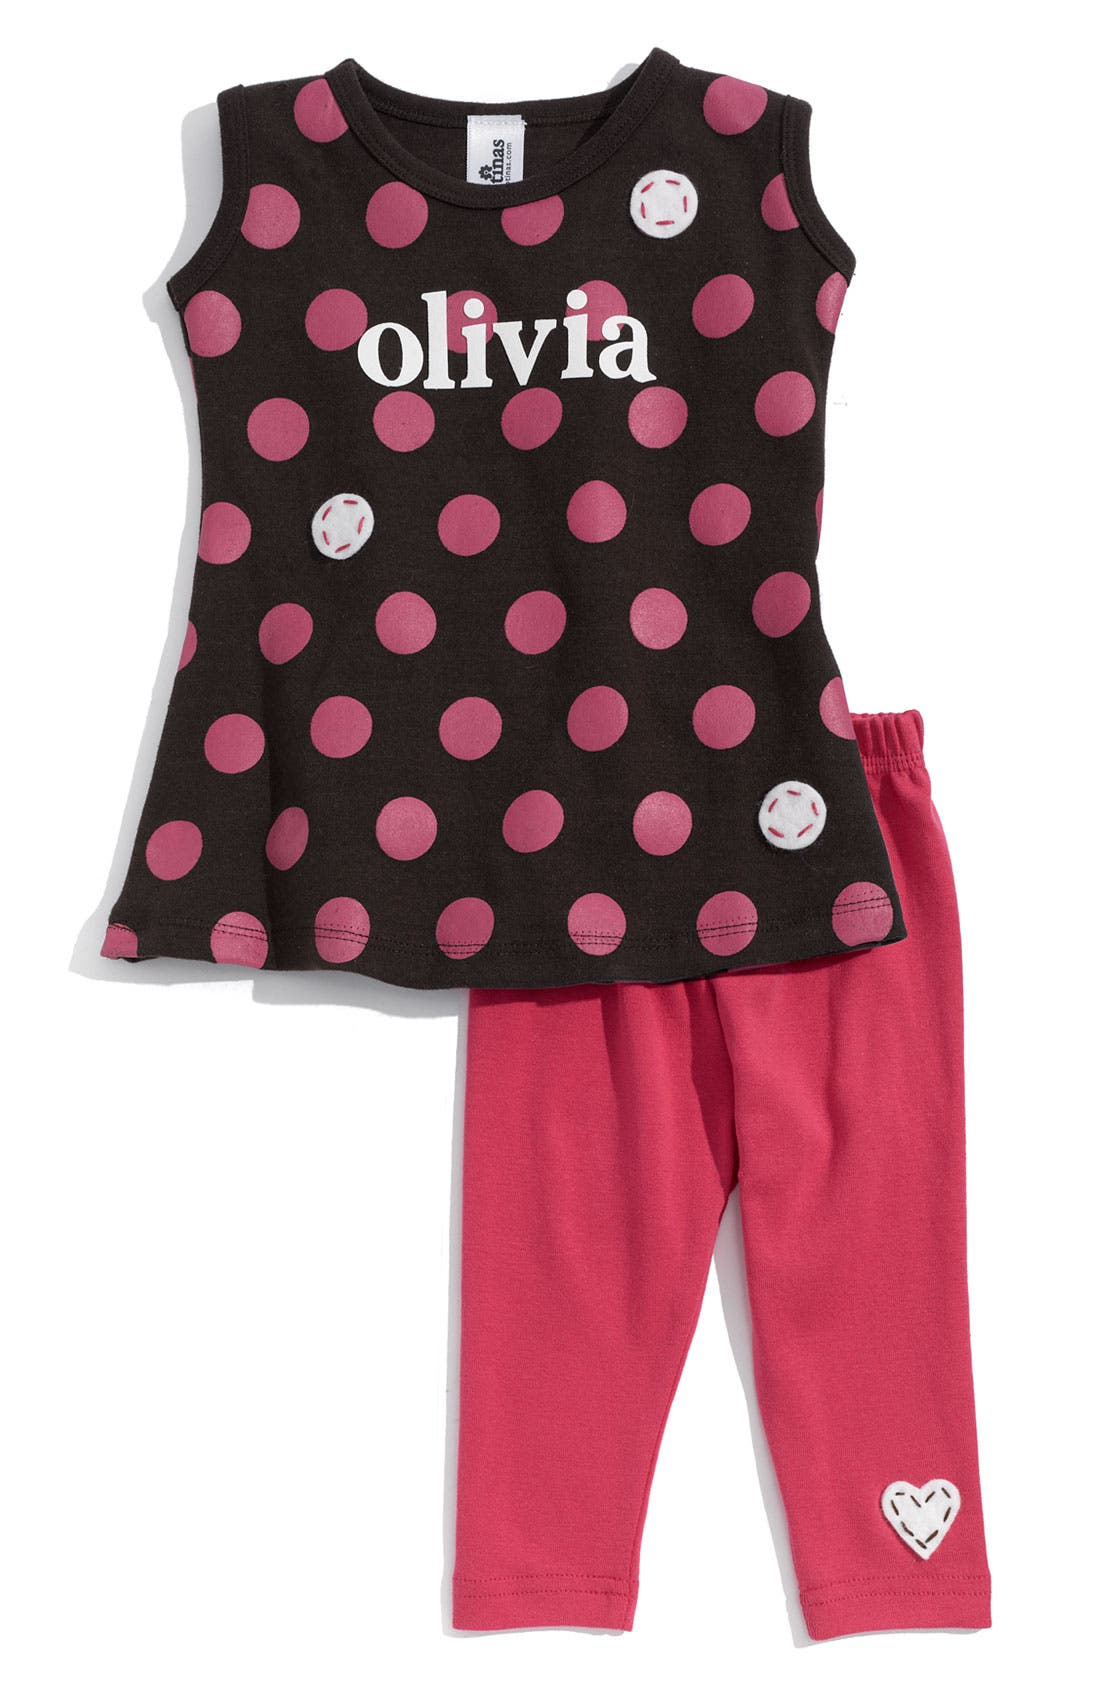 Alternate Image 1 Selected - Two Tinas Personalized Dress & Leggings Set (Baby Girls)